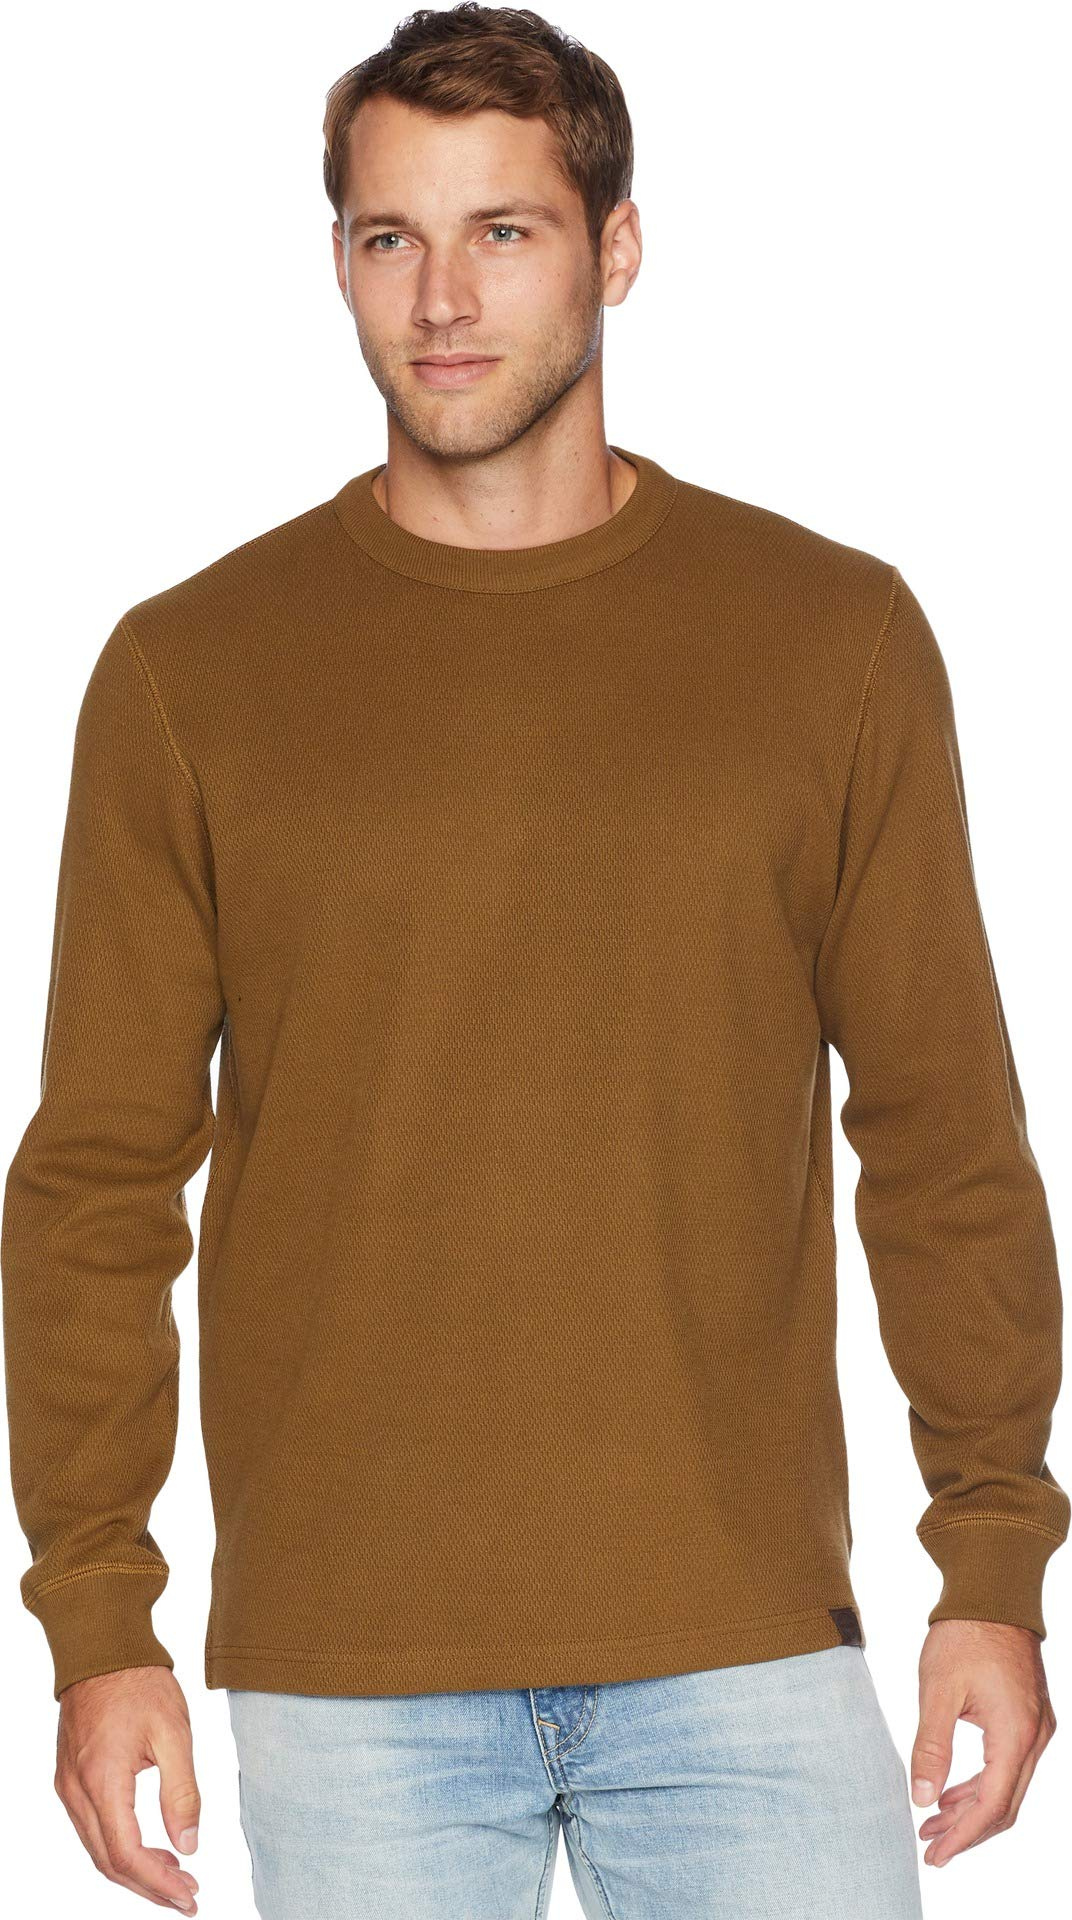 Filson Men's Waffle Knit Thermal Crew Neck Olive Small by Filson